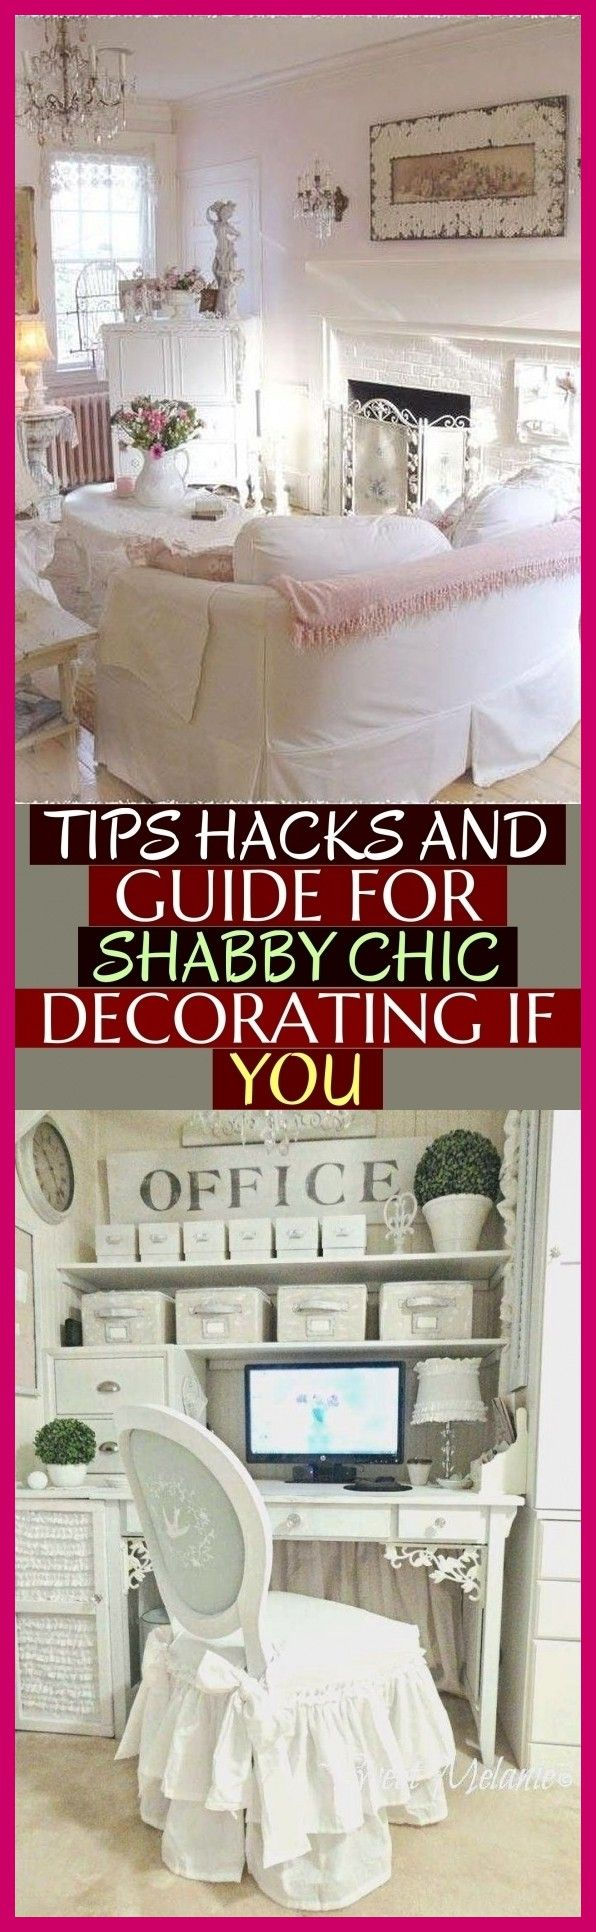 Tips Hacks And Guide For Shabby Chic Decorating If You